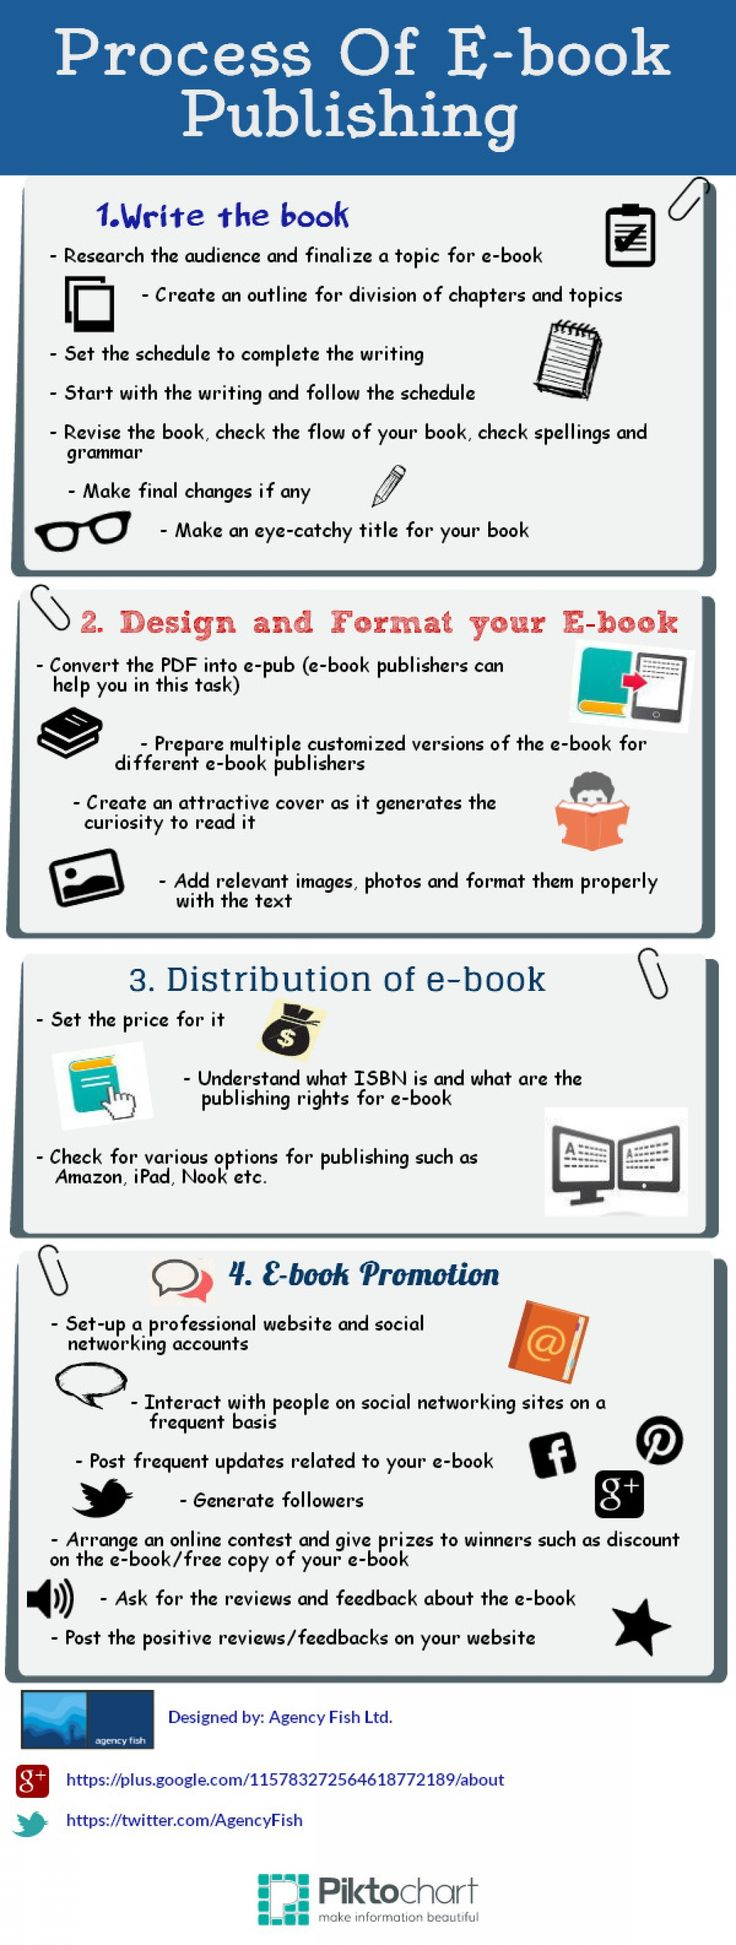 Process of #Ebook Publishing